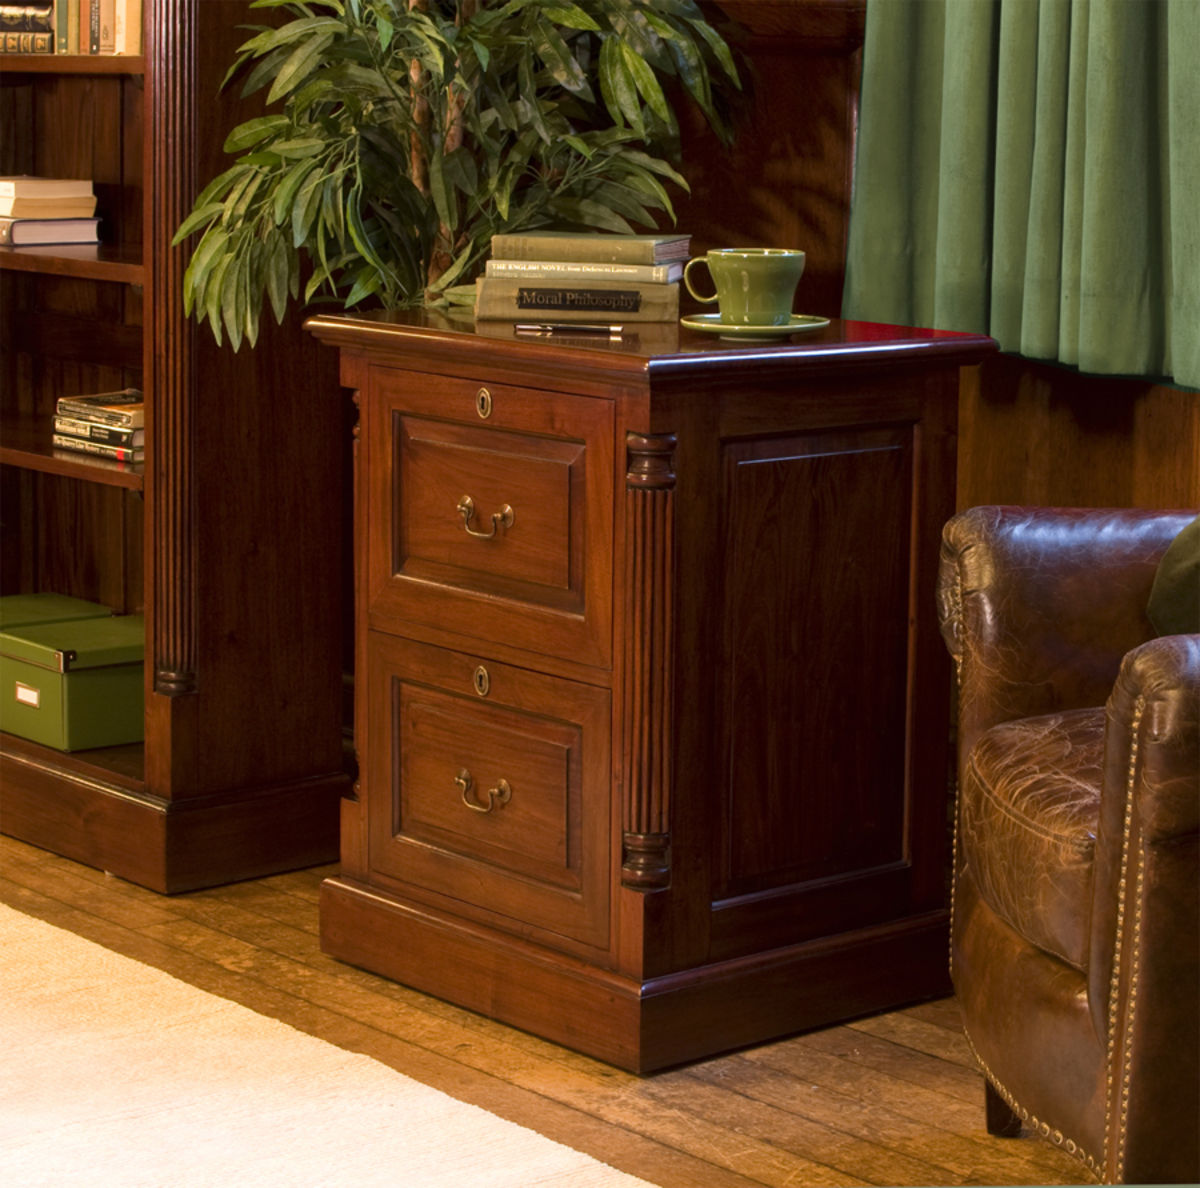 Home Office Furniture At Wooden Furniture Store: La Roque Mahogany Two Drawer Filing Cabinet Was £600.00